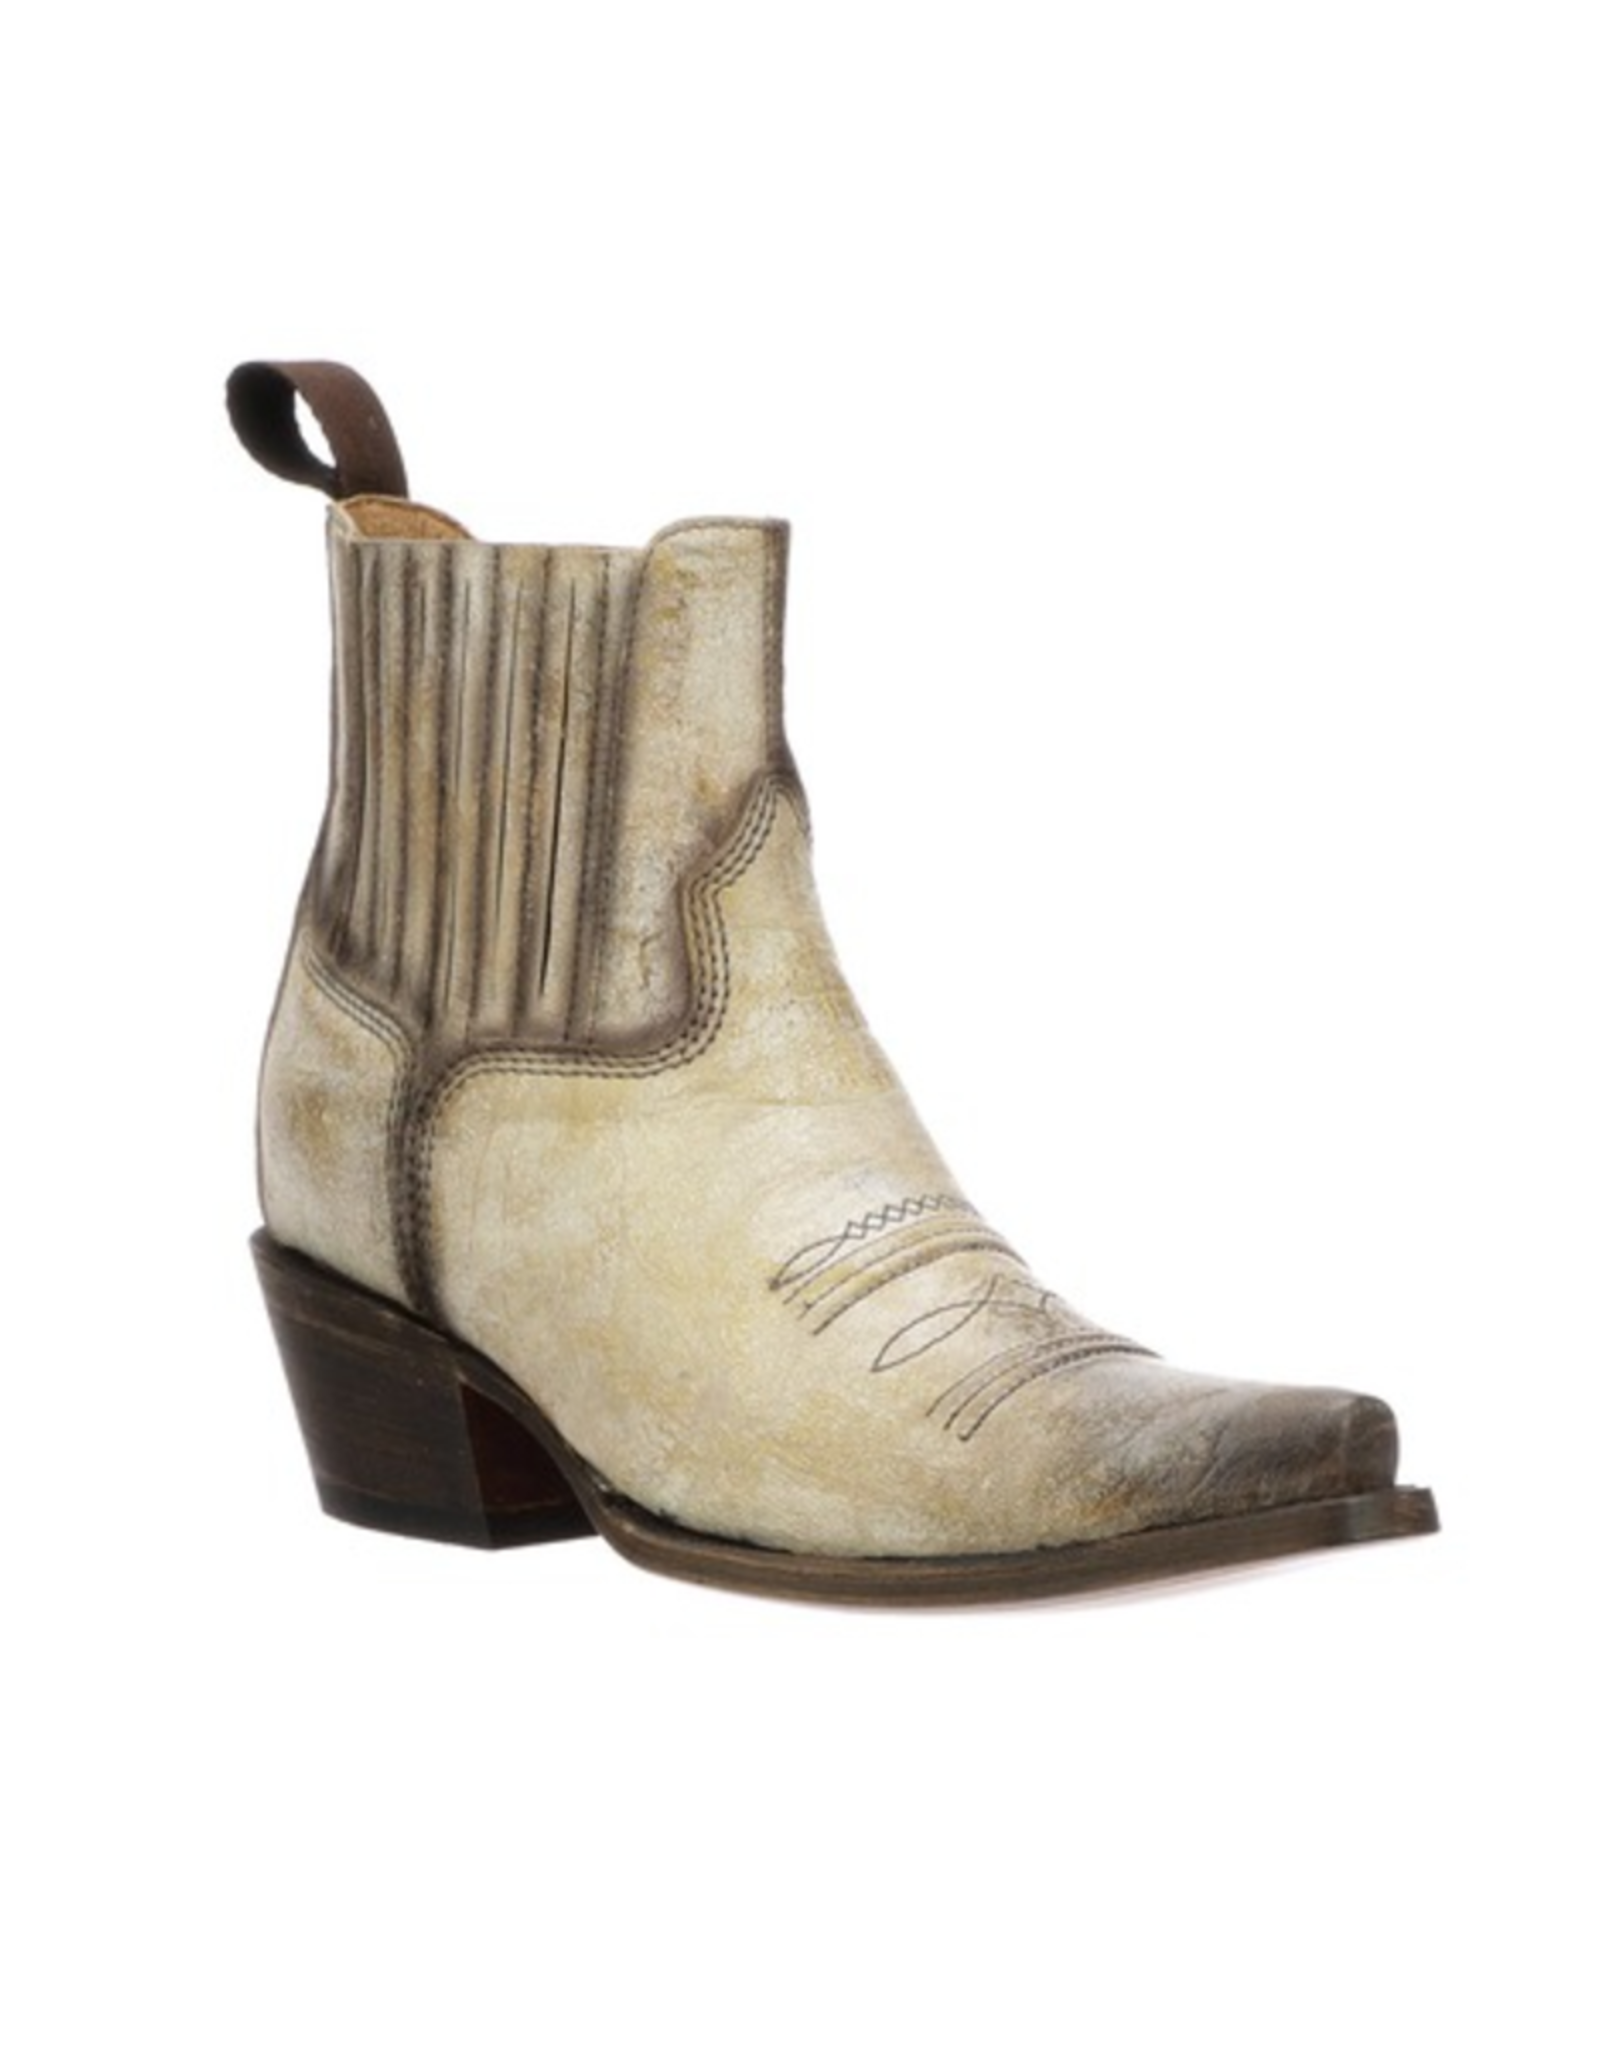 Lucchese Lucchese Cleo, Moto Shorty Boot, 9B